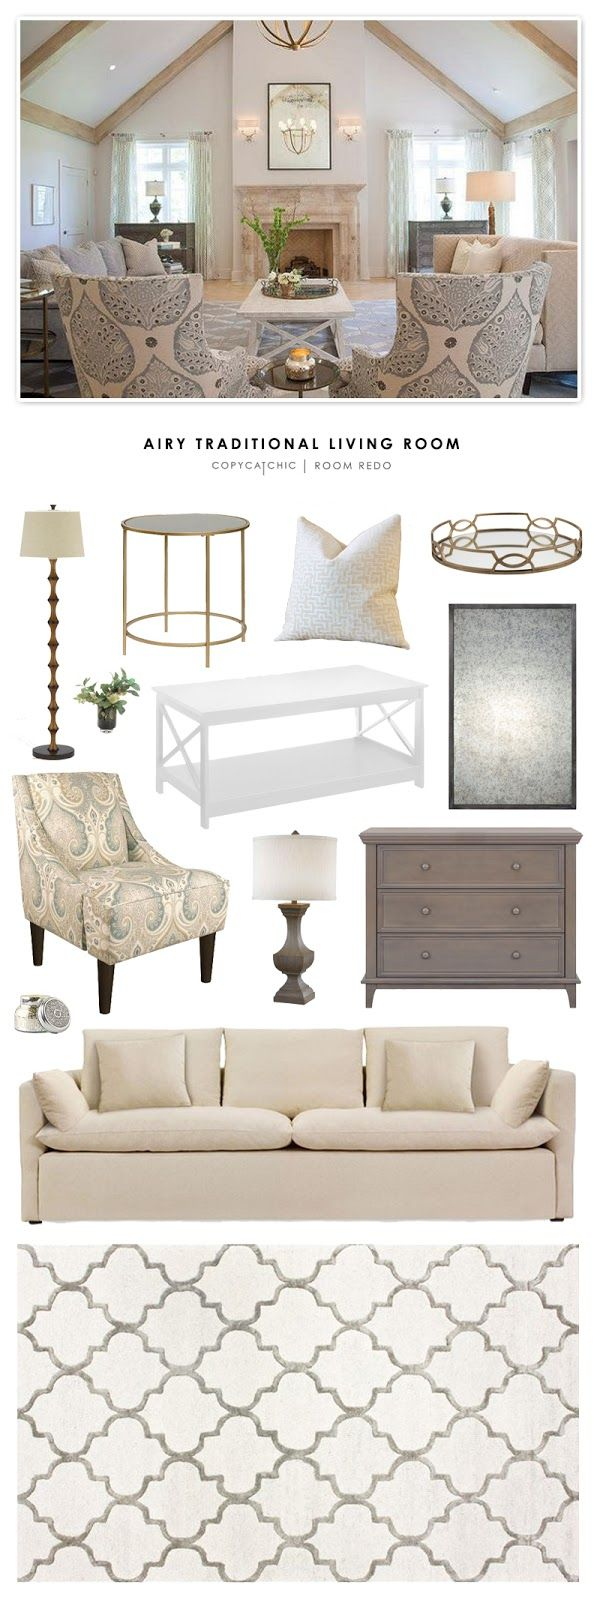 Room Redo Ideas best 25+ living room furniture ideas on pinterest | family room